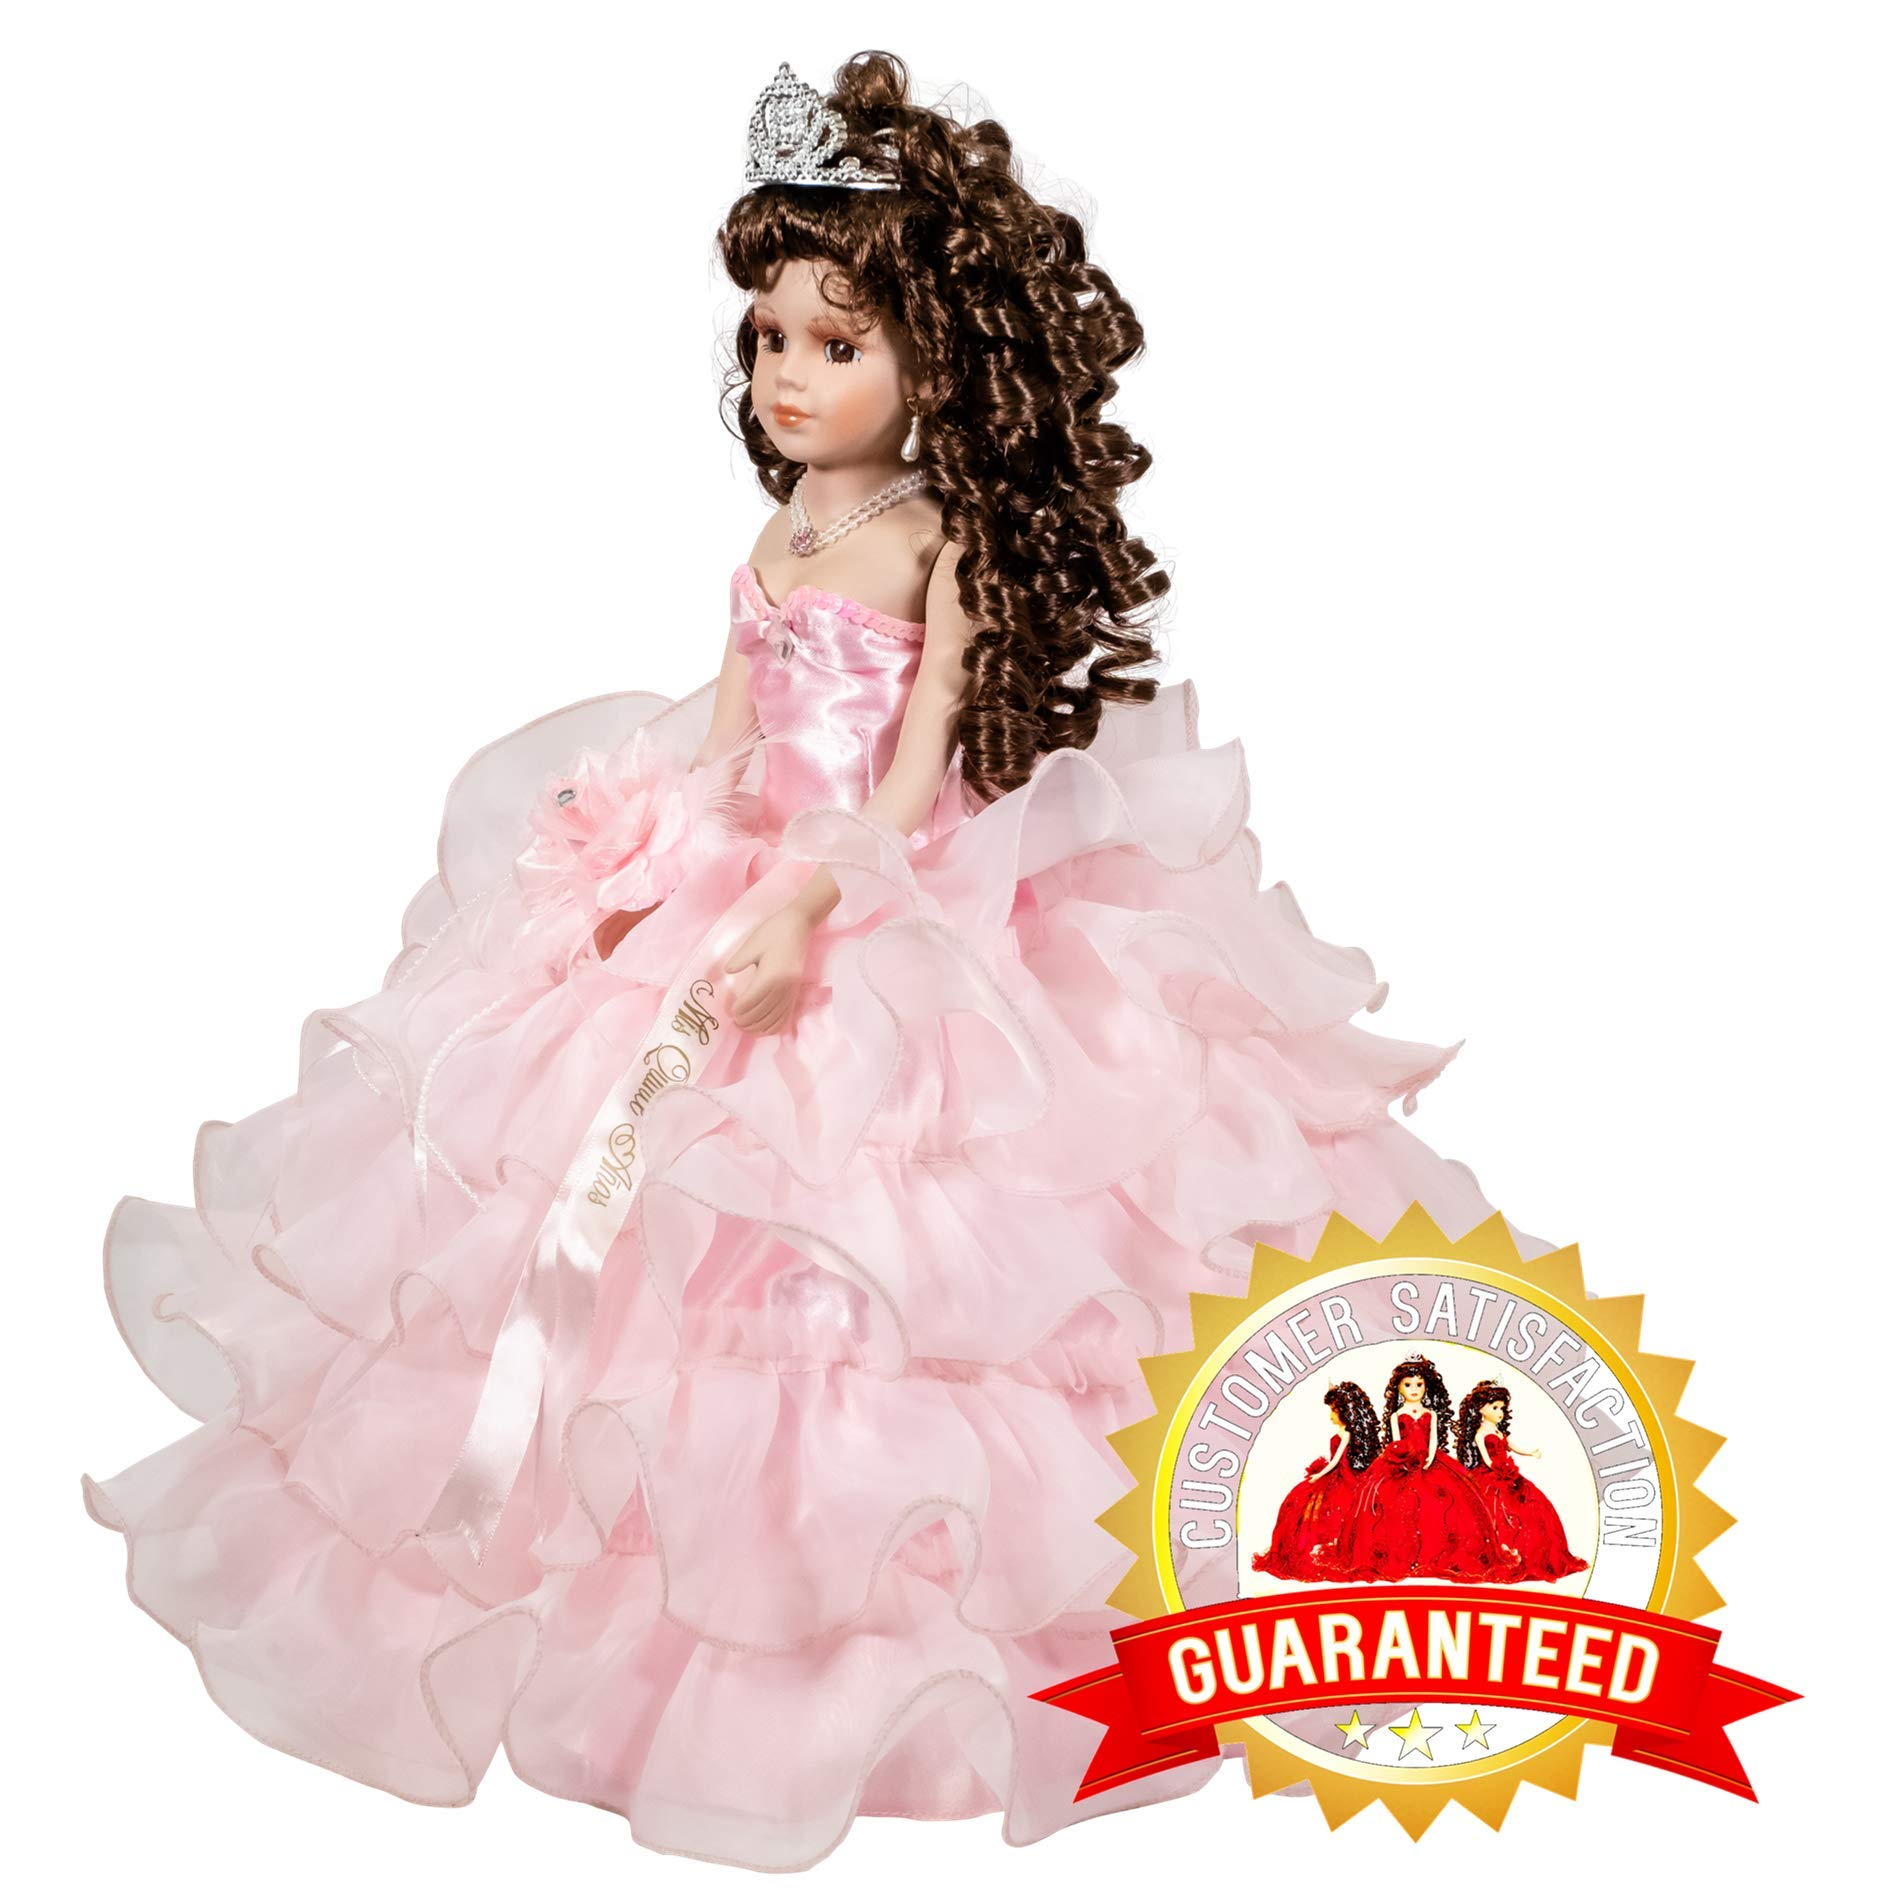 Kinnex Collections by Amanda 18'' Porcelain Quinceanera Umbrella Doll (Table Centerpiece) ~ Pink ~ KW18728-3